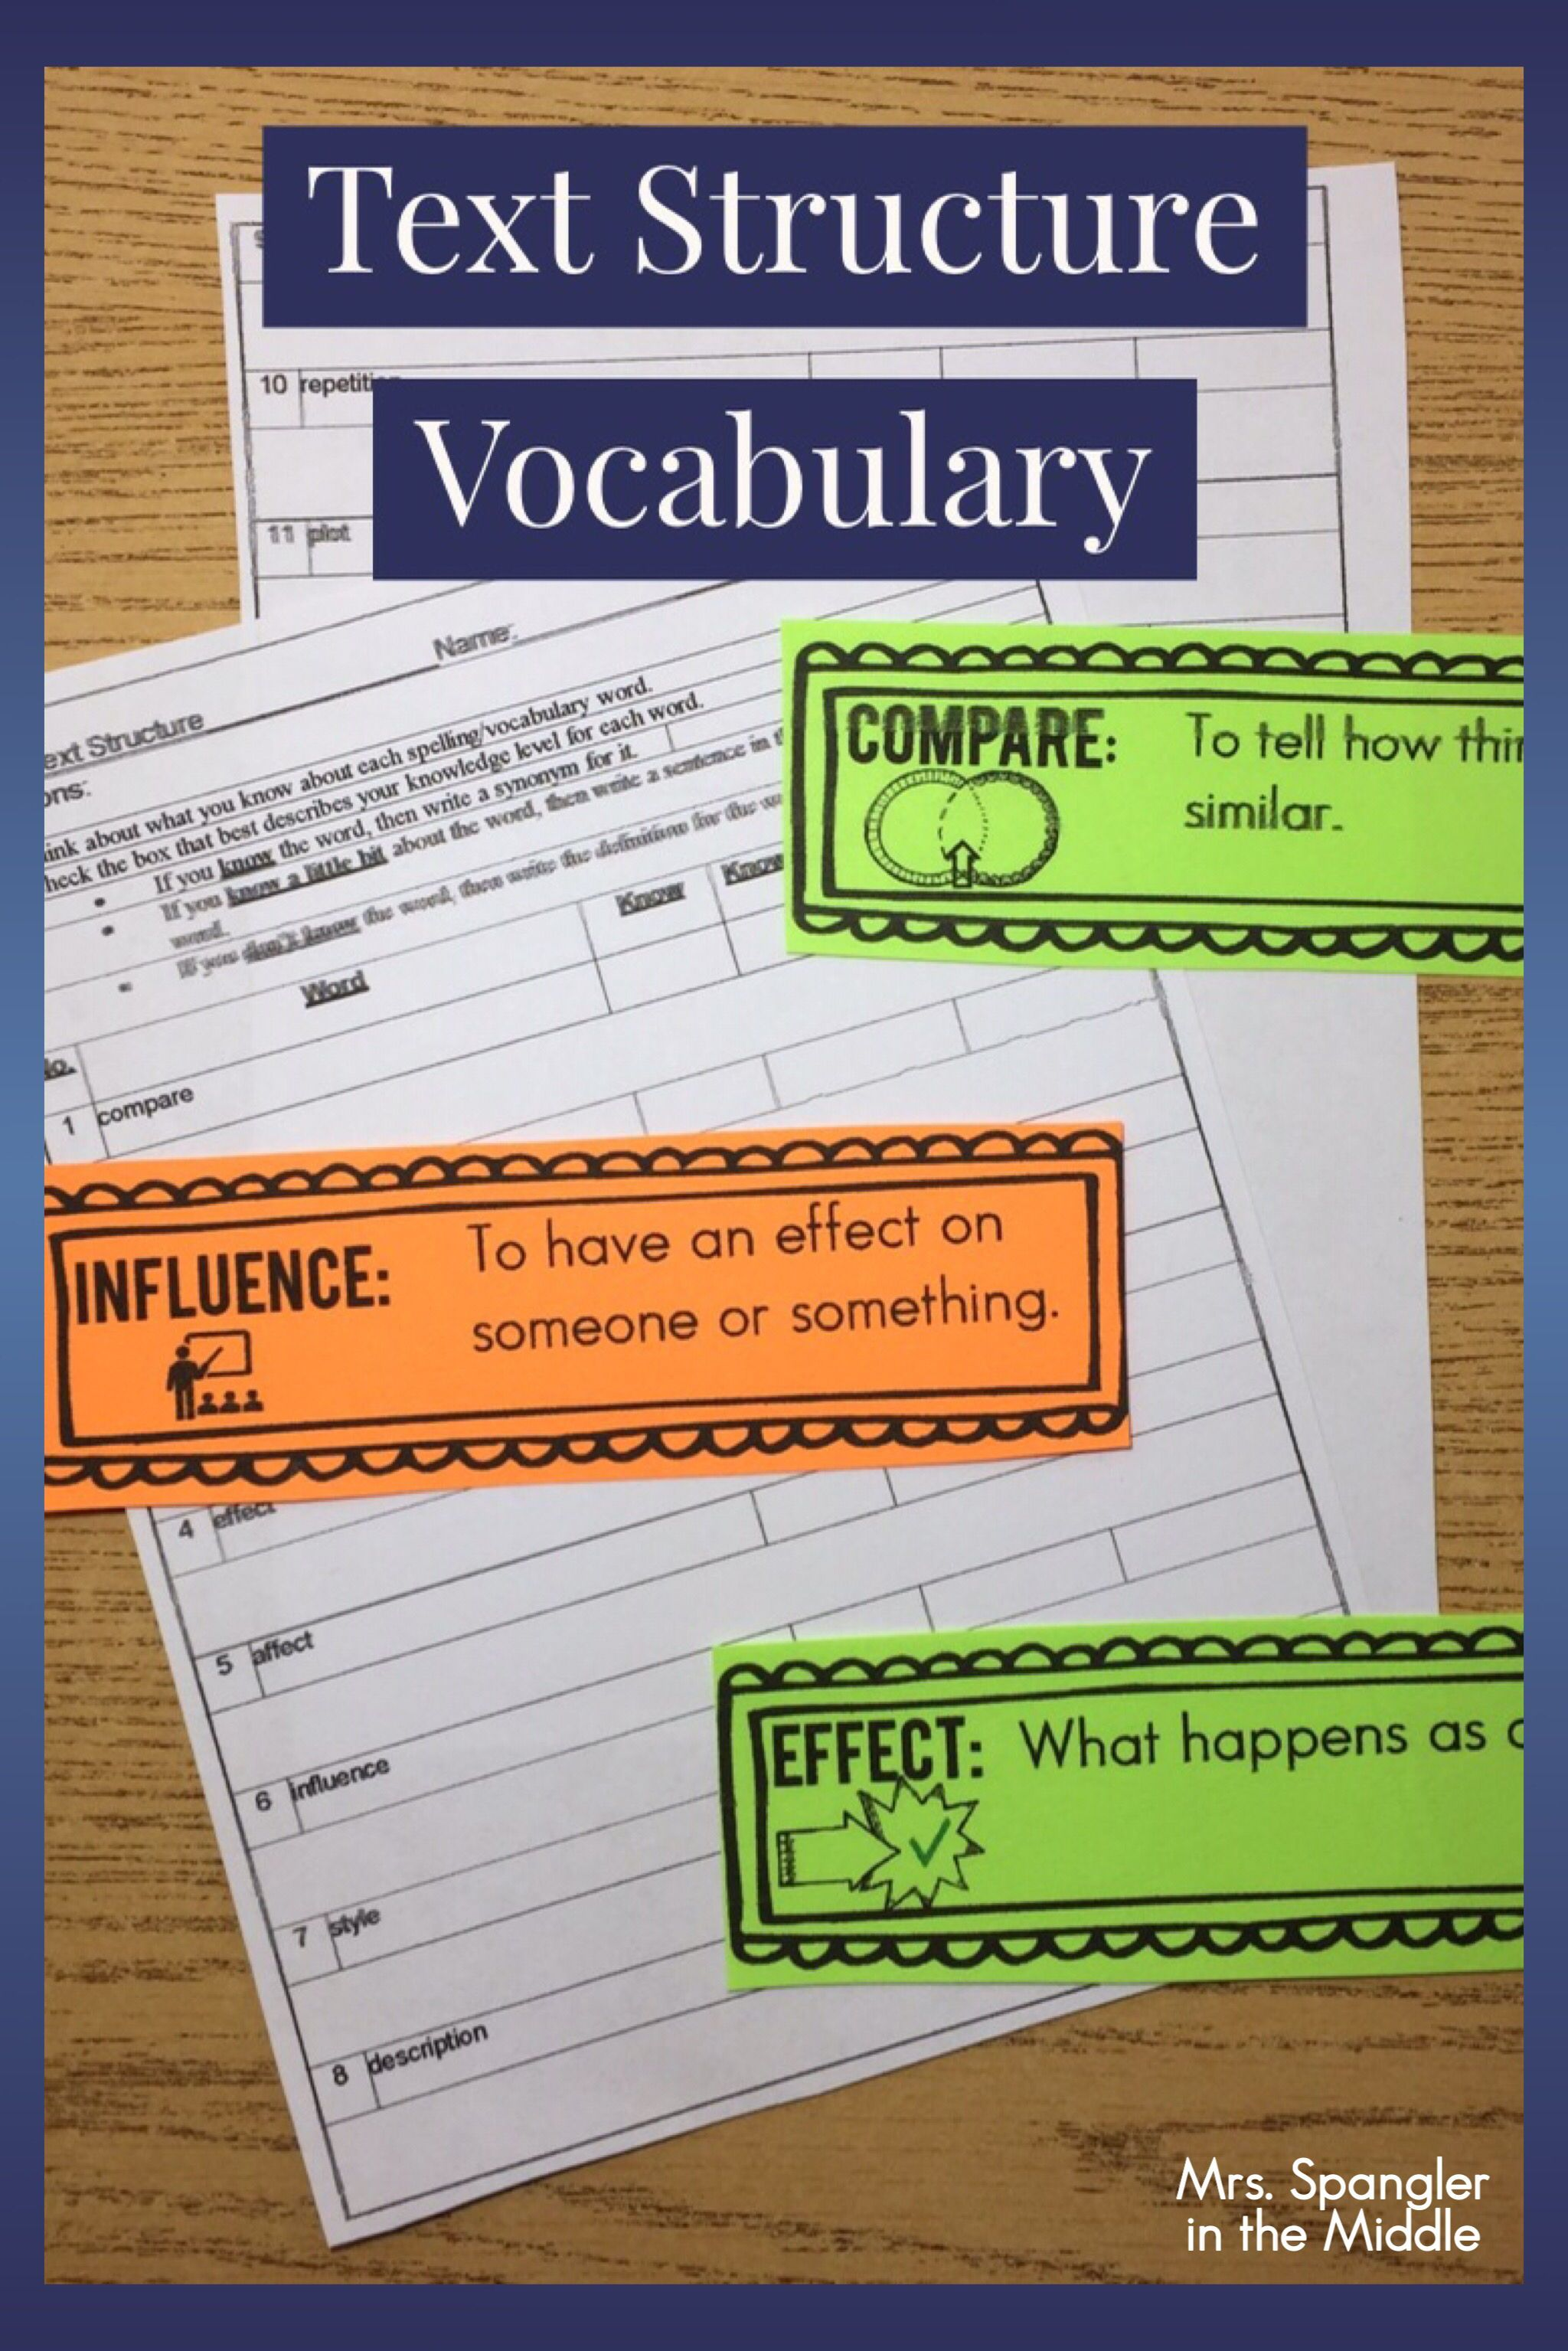 Text Structure Vocabulary